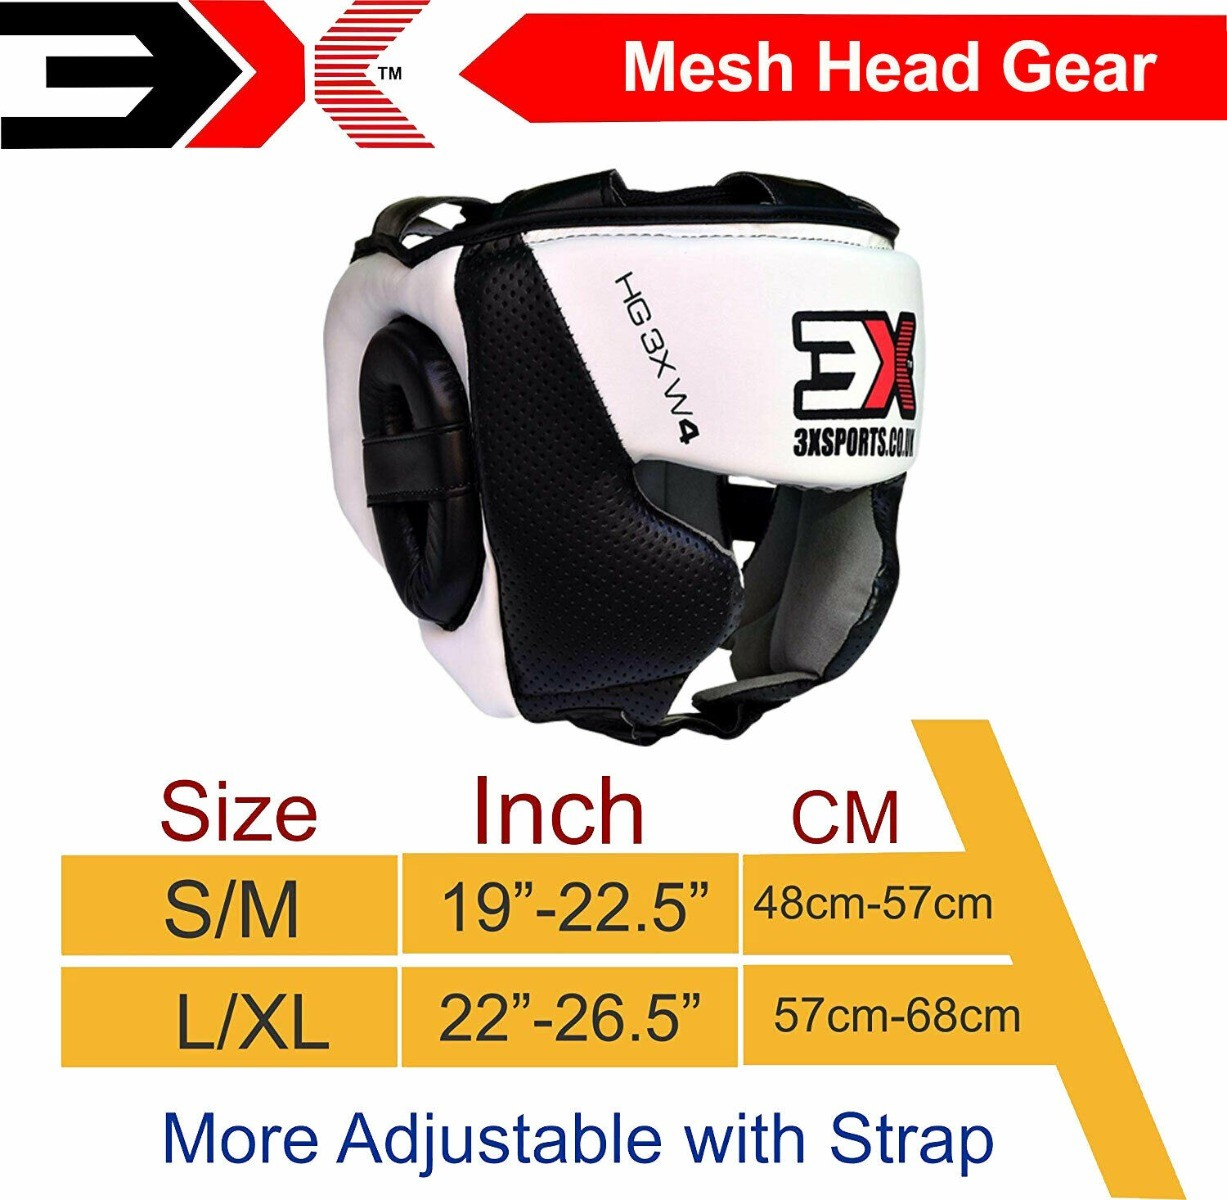 3X Sports Professional Choice HG-3X-03 Head Guard(Black/White)-1441